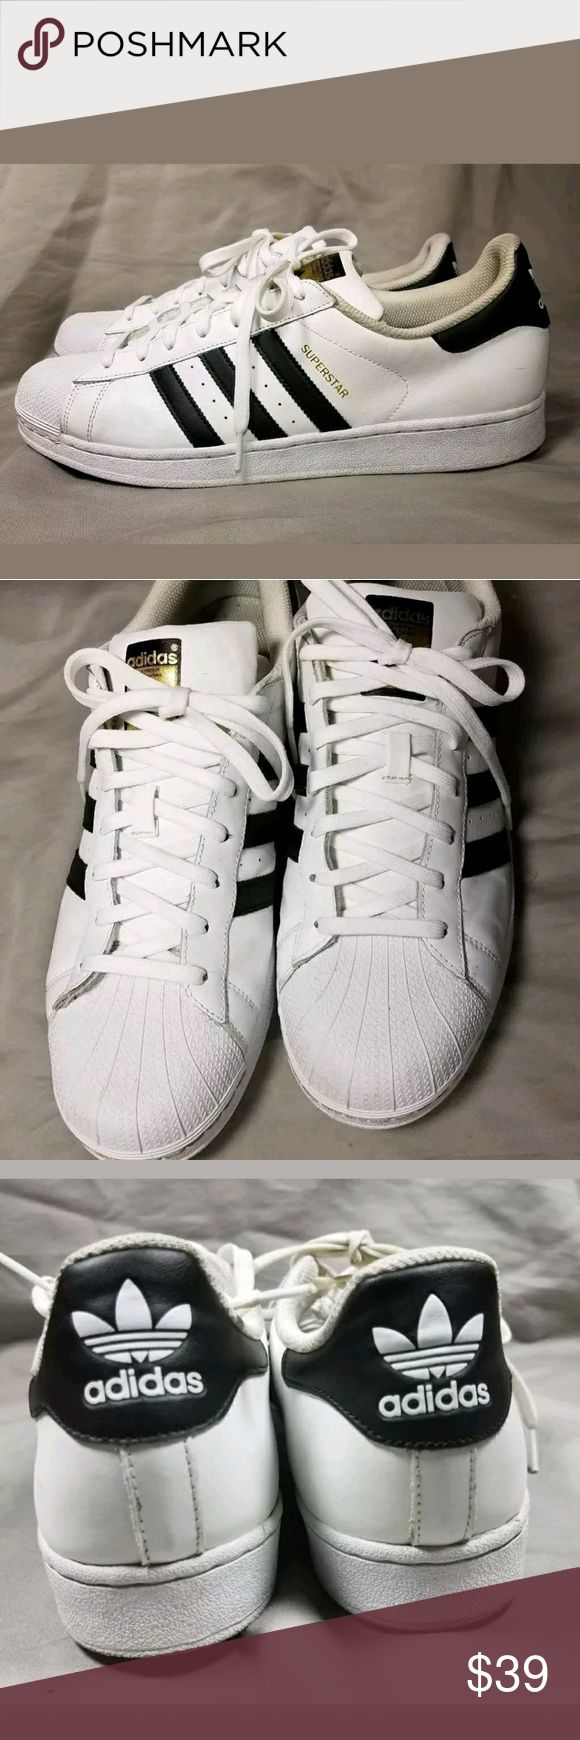 ADIDAS SUPERSTAR SHELLTOE Men's sz 12 Classic Adidas Superstar Shell tops. White with black accents. Men's sz 12, good condition, minor dirt. Great everyday kicks. Easy to clean, durable shoes adidas Shoes Sneakers